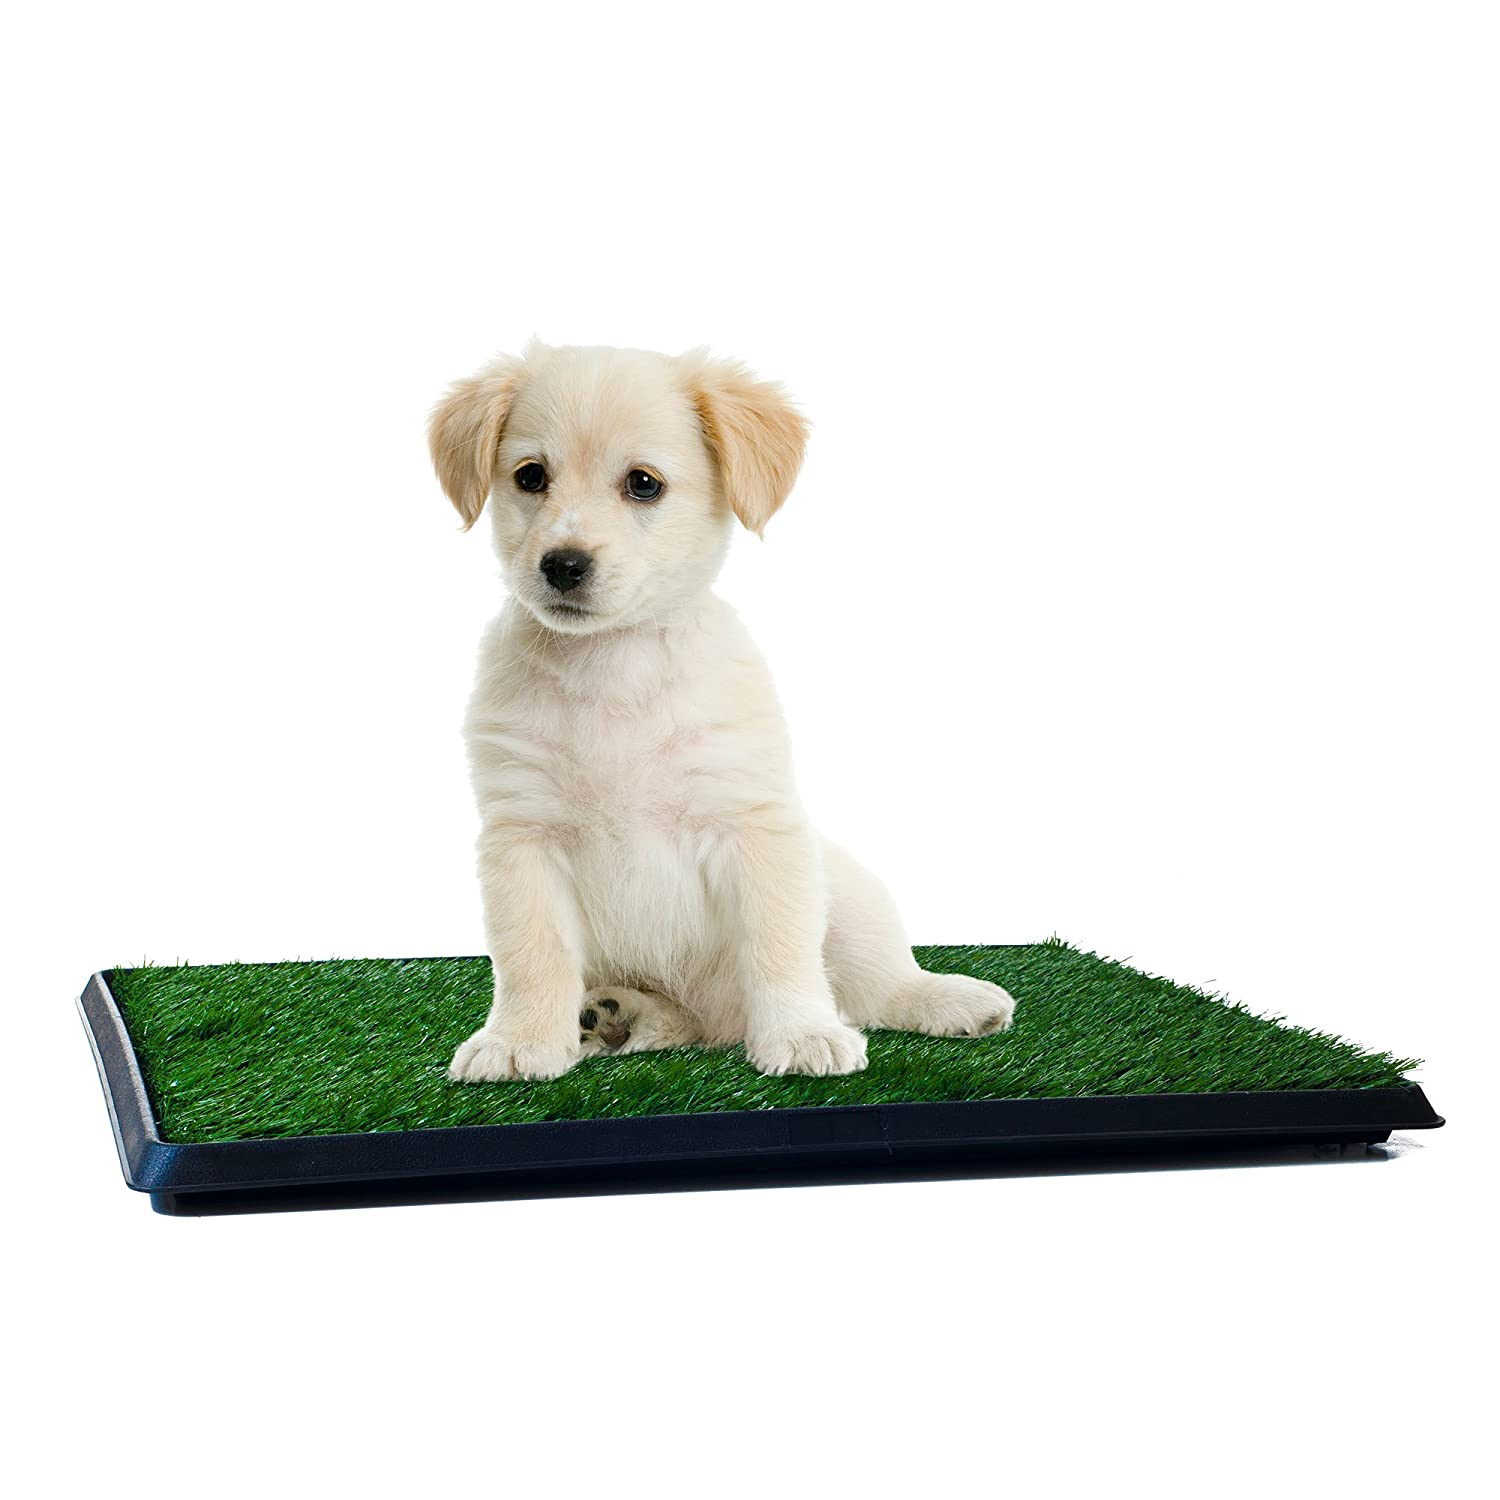 Artificial Grass Bathroom Mat for Puppies and Small Pets- Portable Potty Trainer for Indoor and Outdoor Use